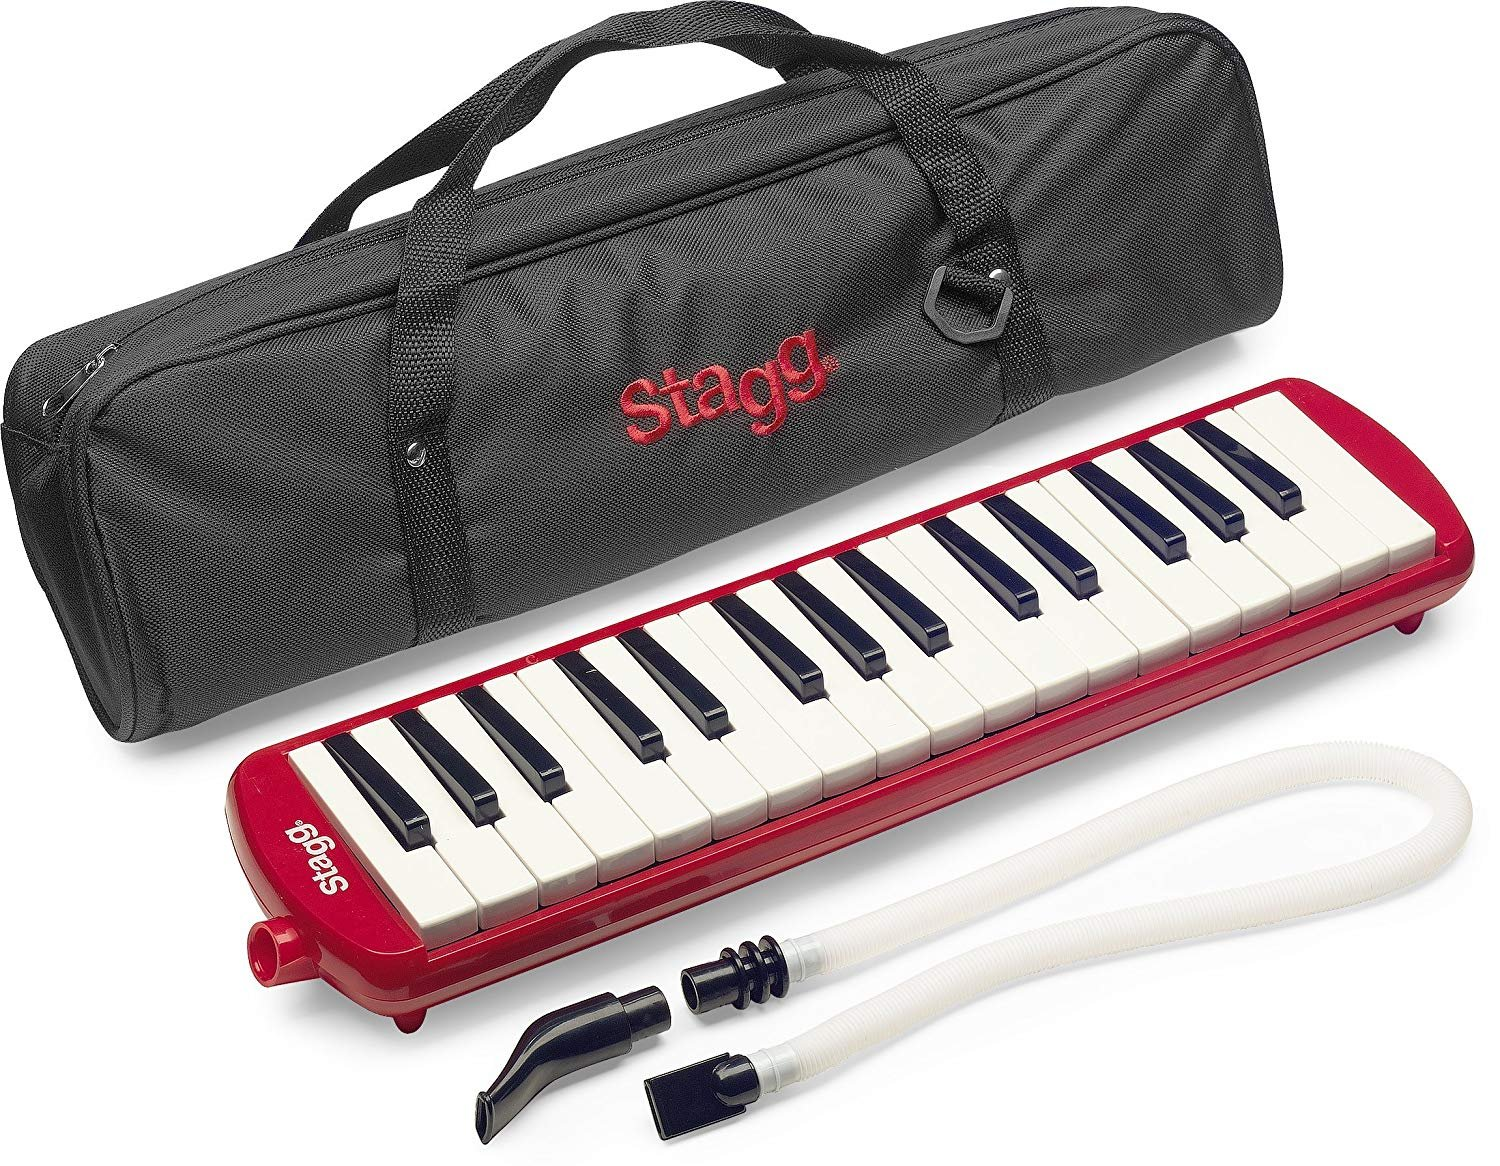 Stagg 32 Key Melodica - Red w/bag